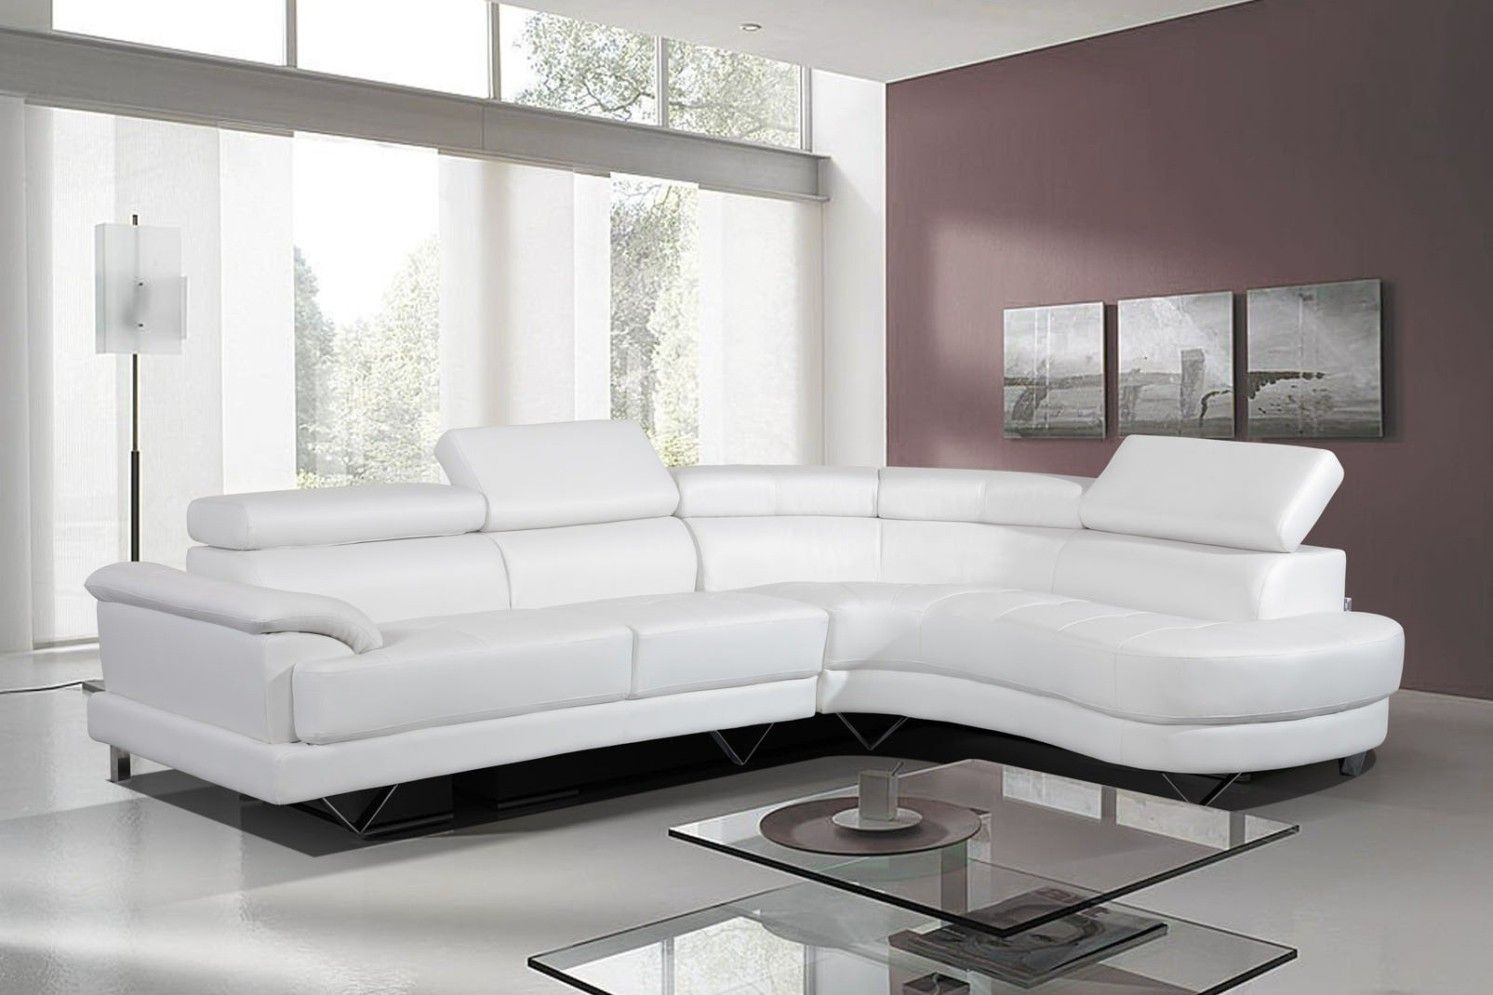 What Are The Things To Consider When Purchasing A Corner Leather Sofa Leather Corner Sofa White Leather Couch White Leather Sofas